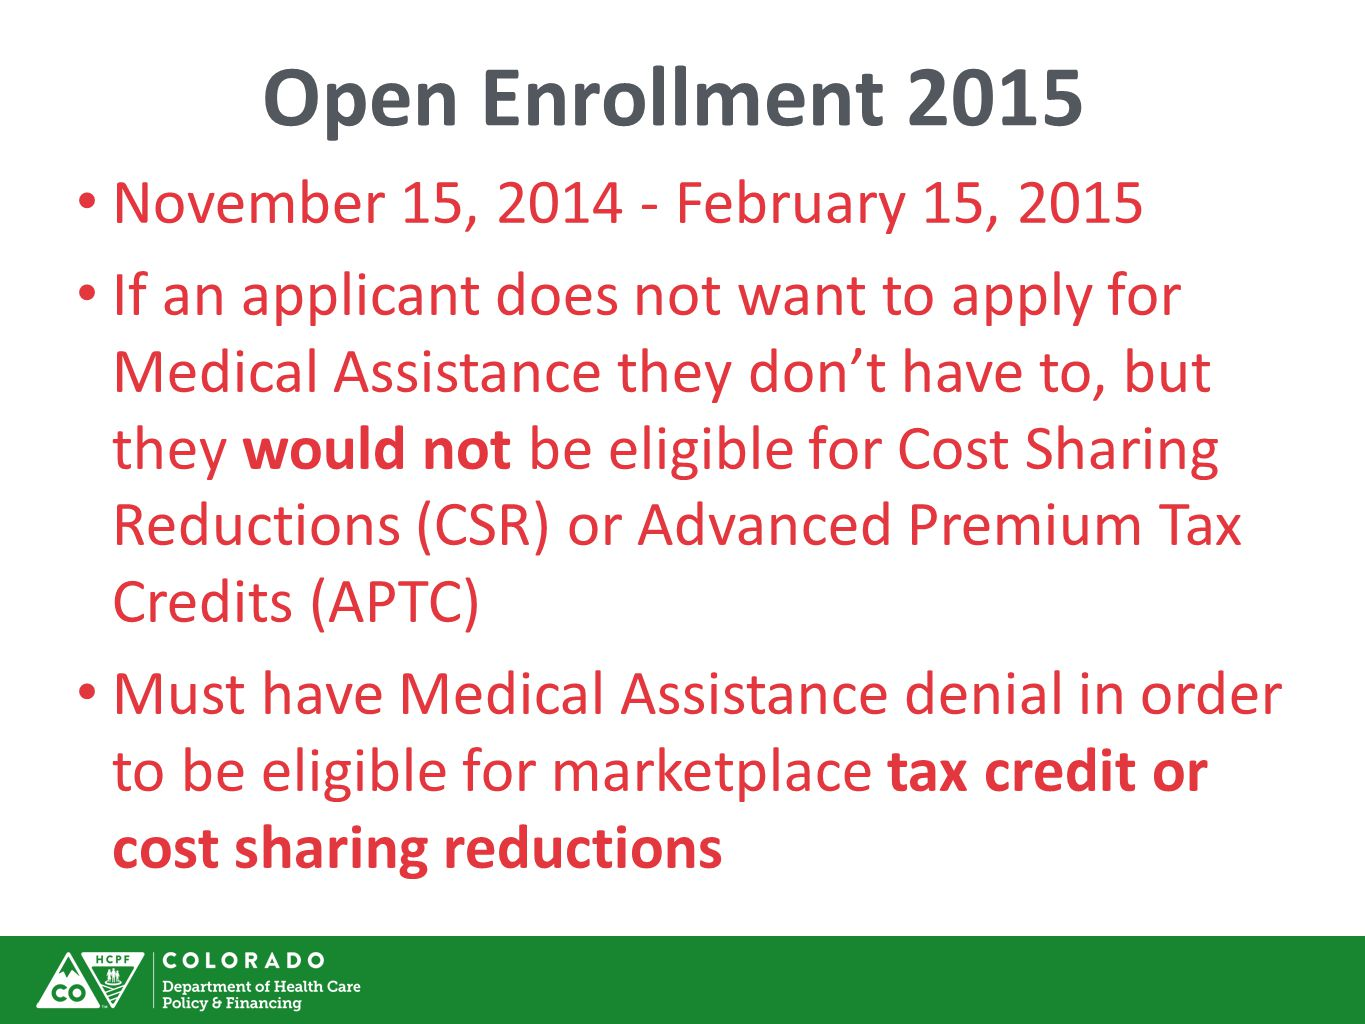 Open Enrollment 2015 November 15, 2014 - February 15, 2015 If an applicant does not want to apply for Medical Assistance they don't have to, but they would not be eligible for Cost Sharing Reductions (CSR) or Advanced Premium Tax Credits (APTC) Must have Medical Assistance denial in order to be eligible for marketplace tax credit or cost sharing reductions